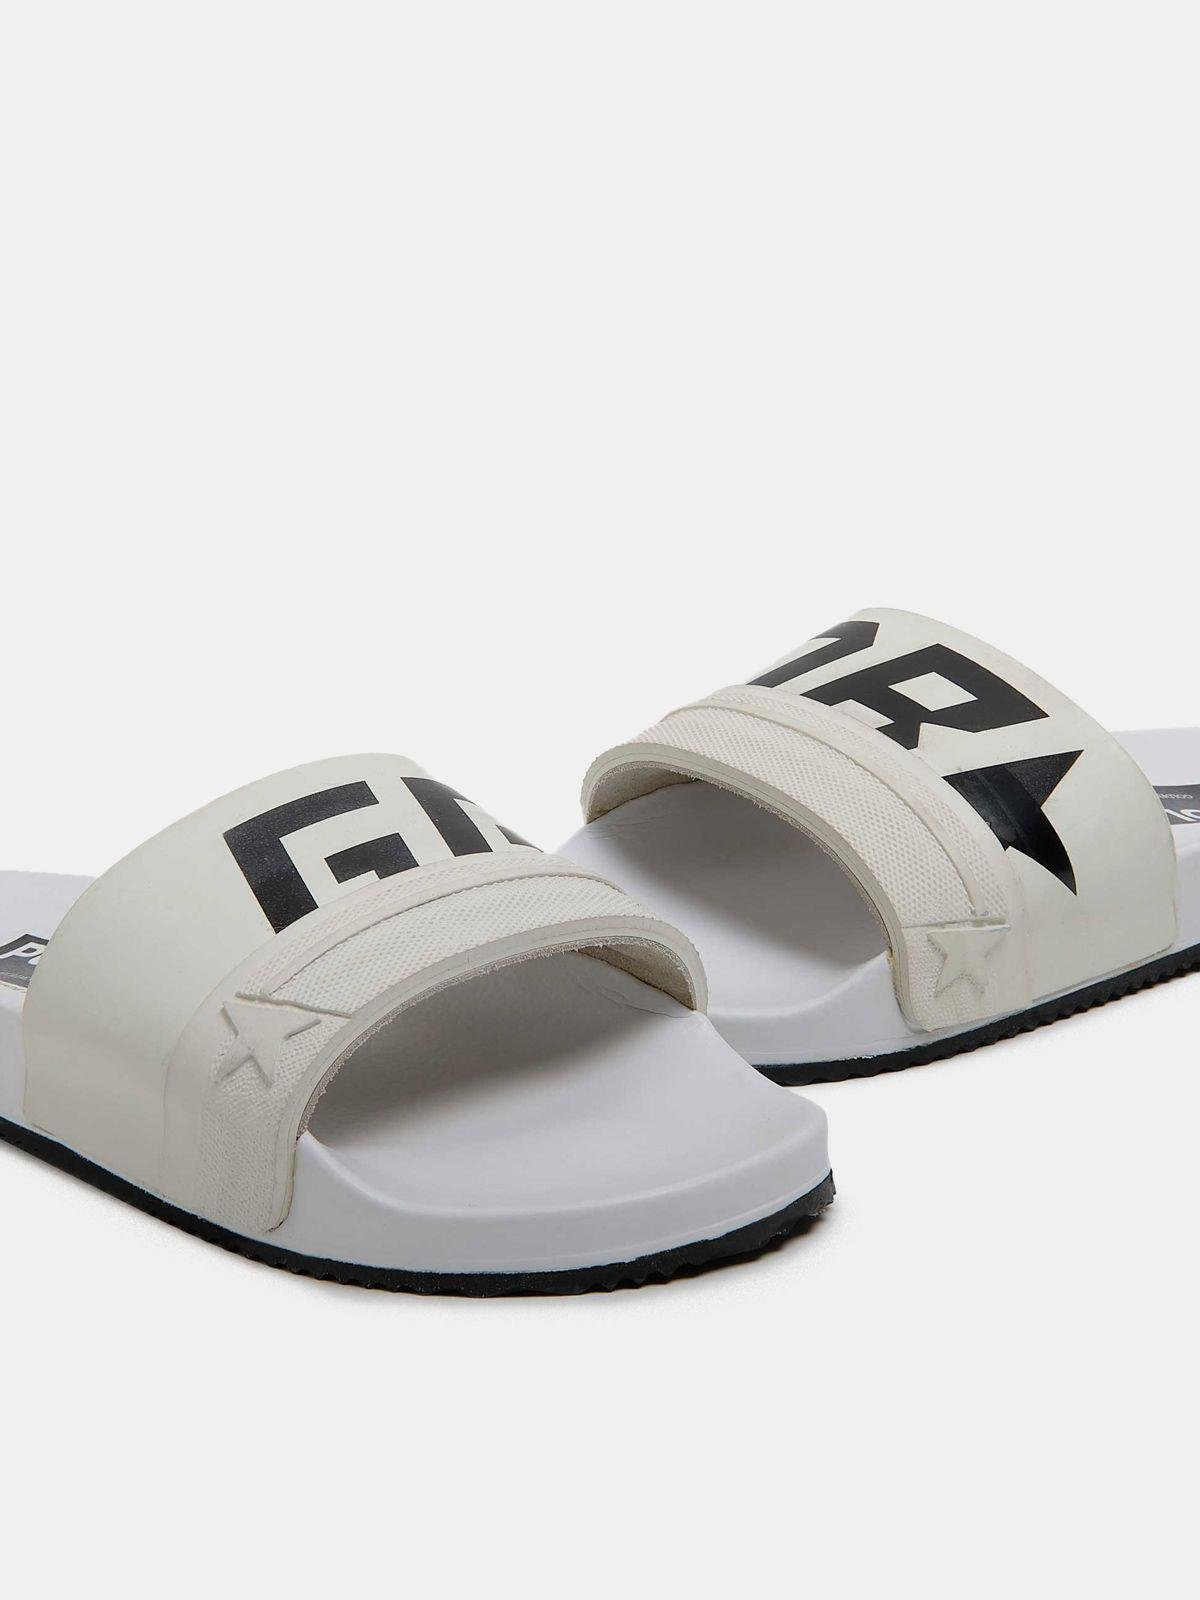 White Poolstars for women with GGDB logo 3